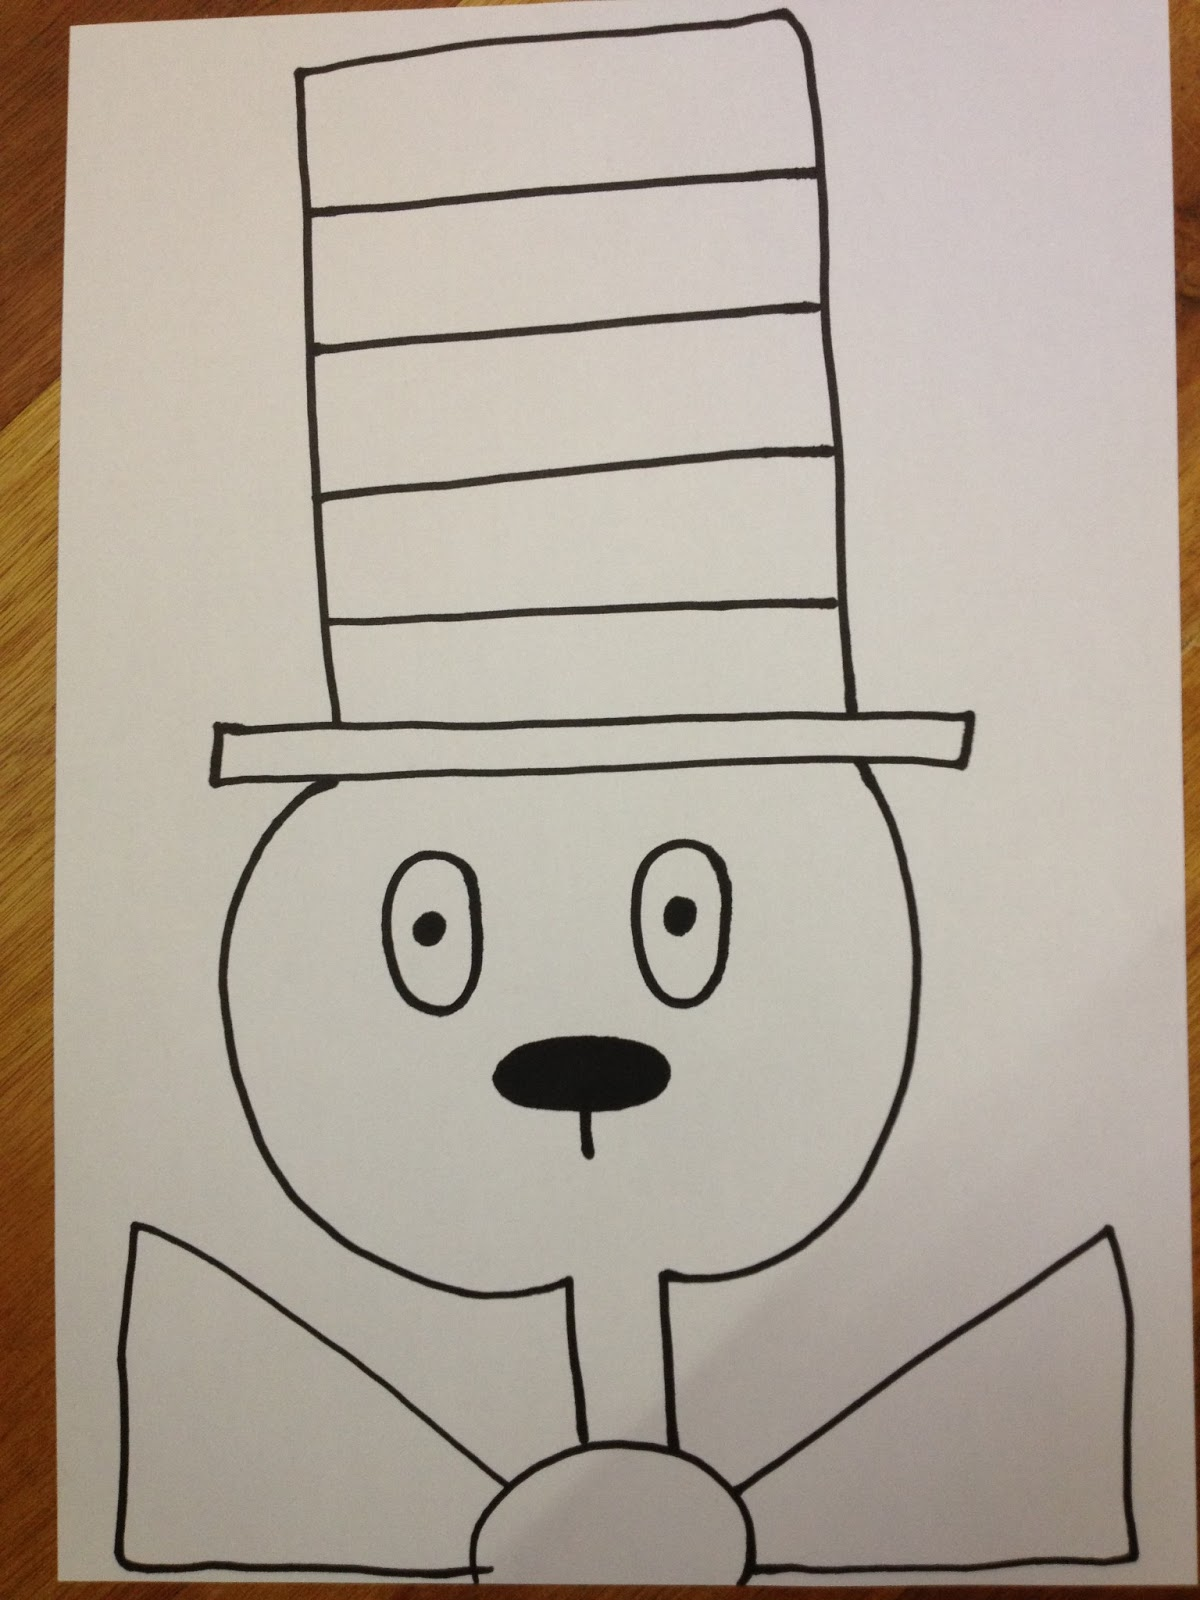 Crayons And Crafting How To Draw Dr Seuss The Cat In The Hat Step